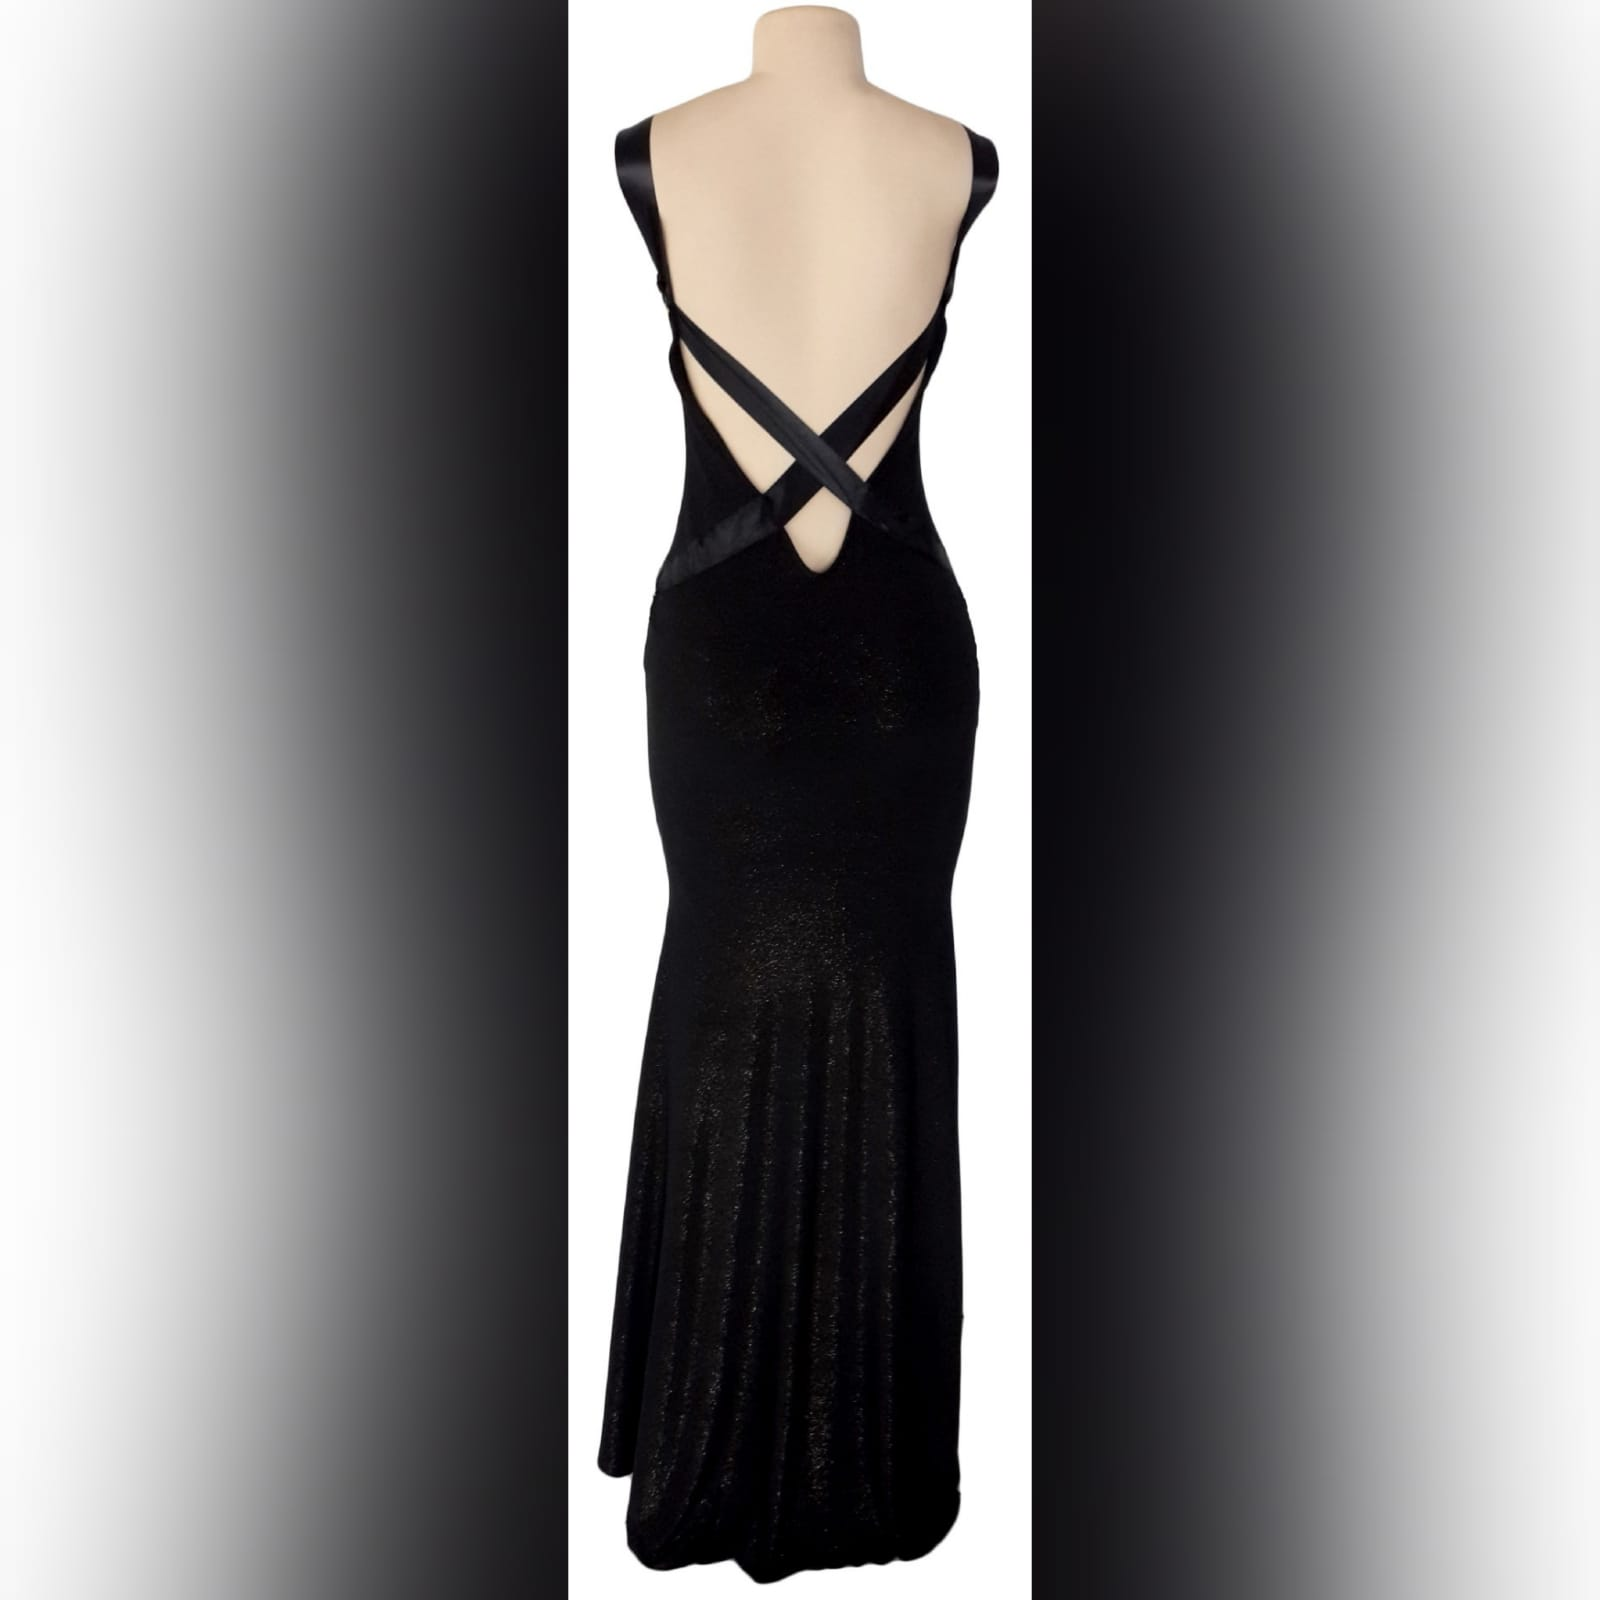 Black shimmer long gala evening dress 1 black shimmer long gala evening dress, with a low v open back. With ribbon creating a belt and a cross at the back